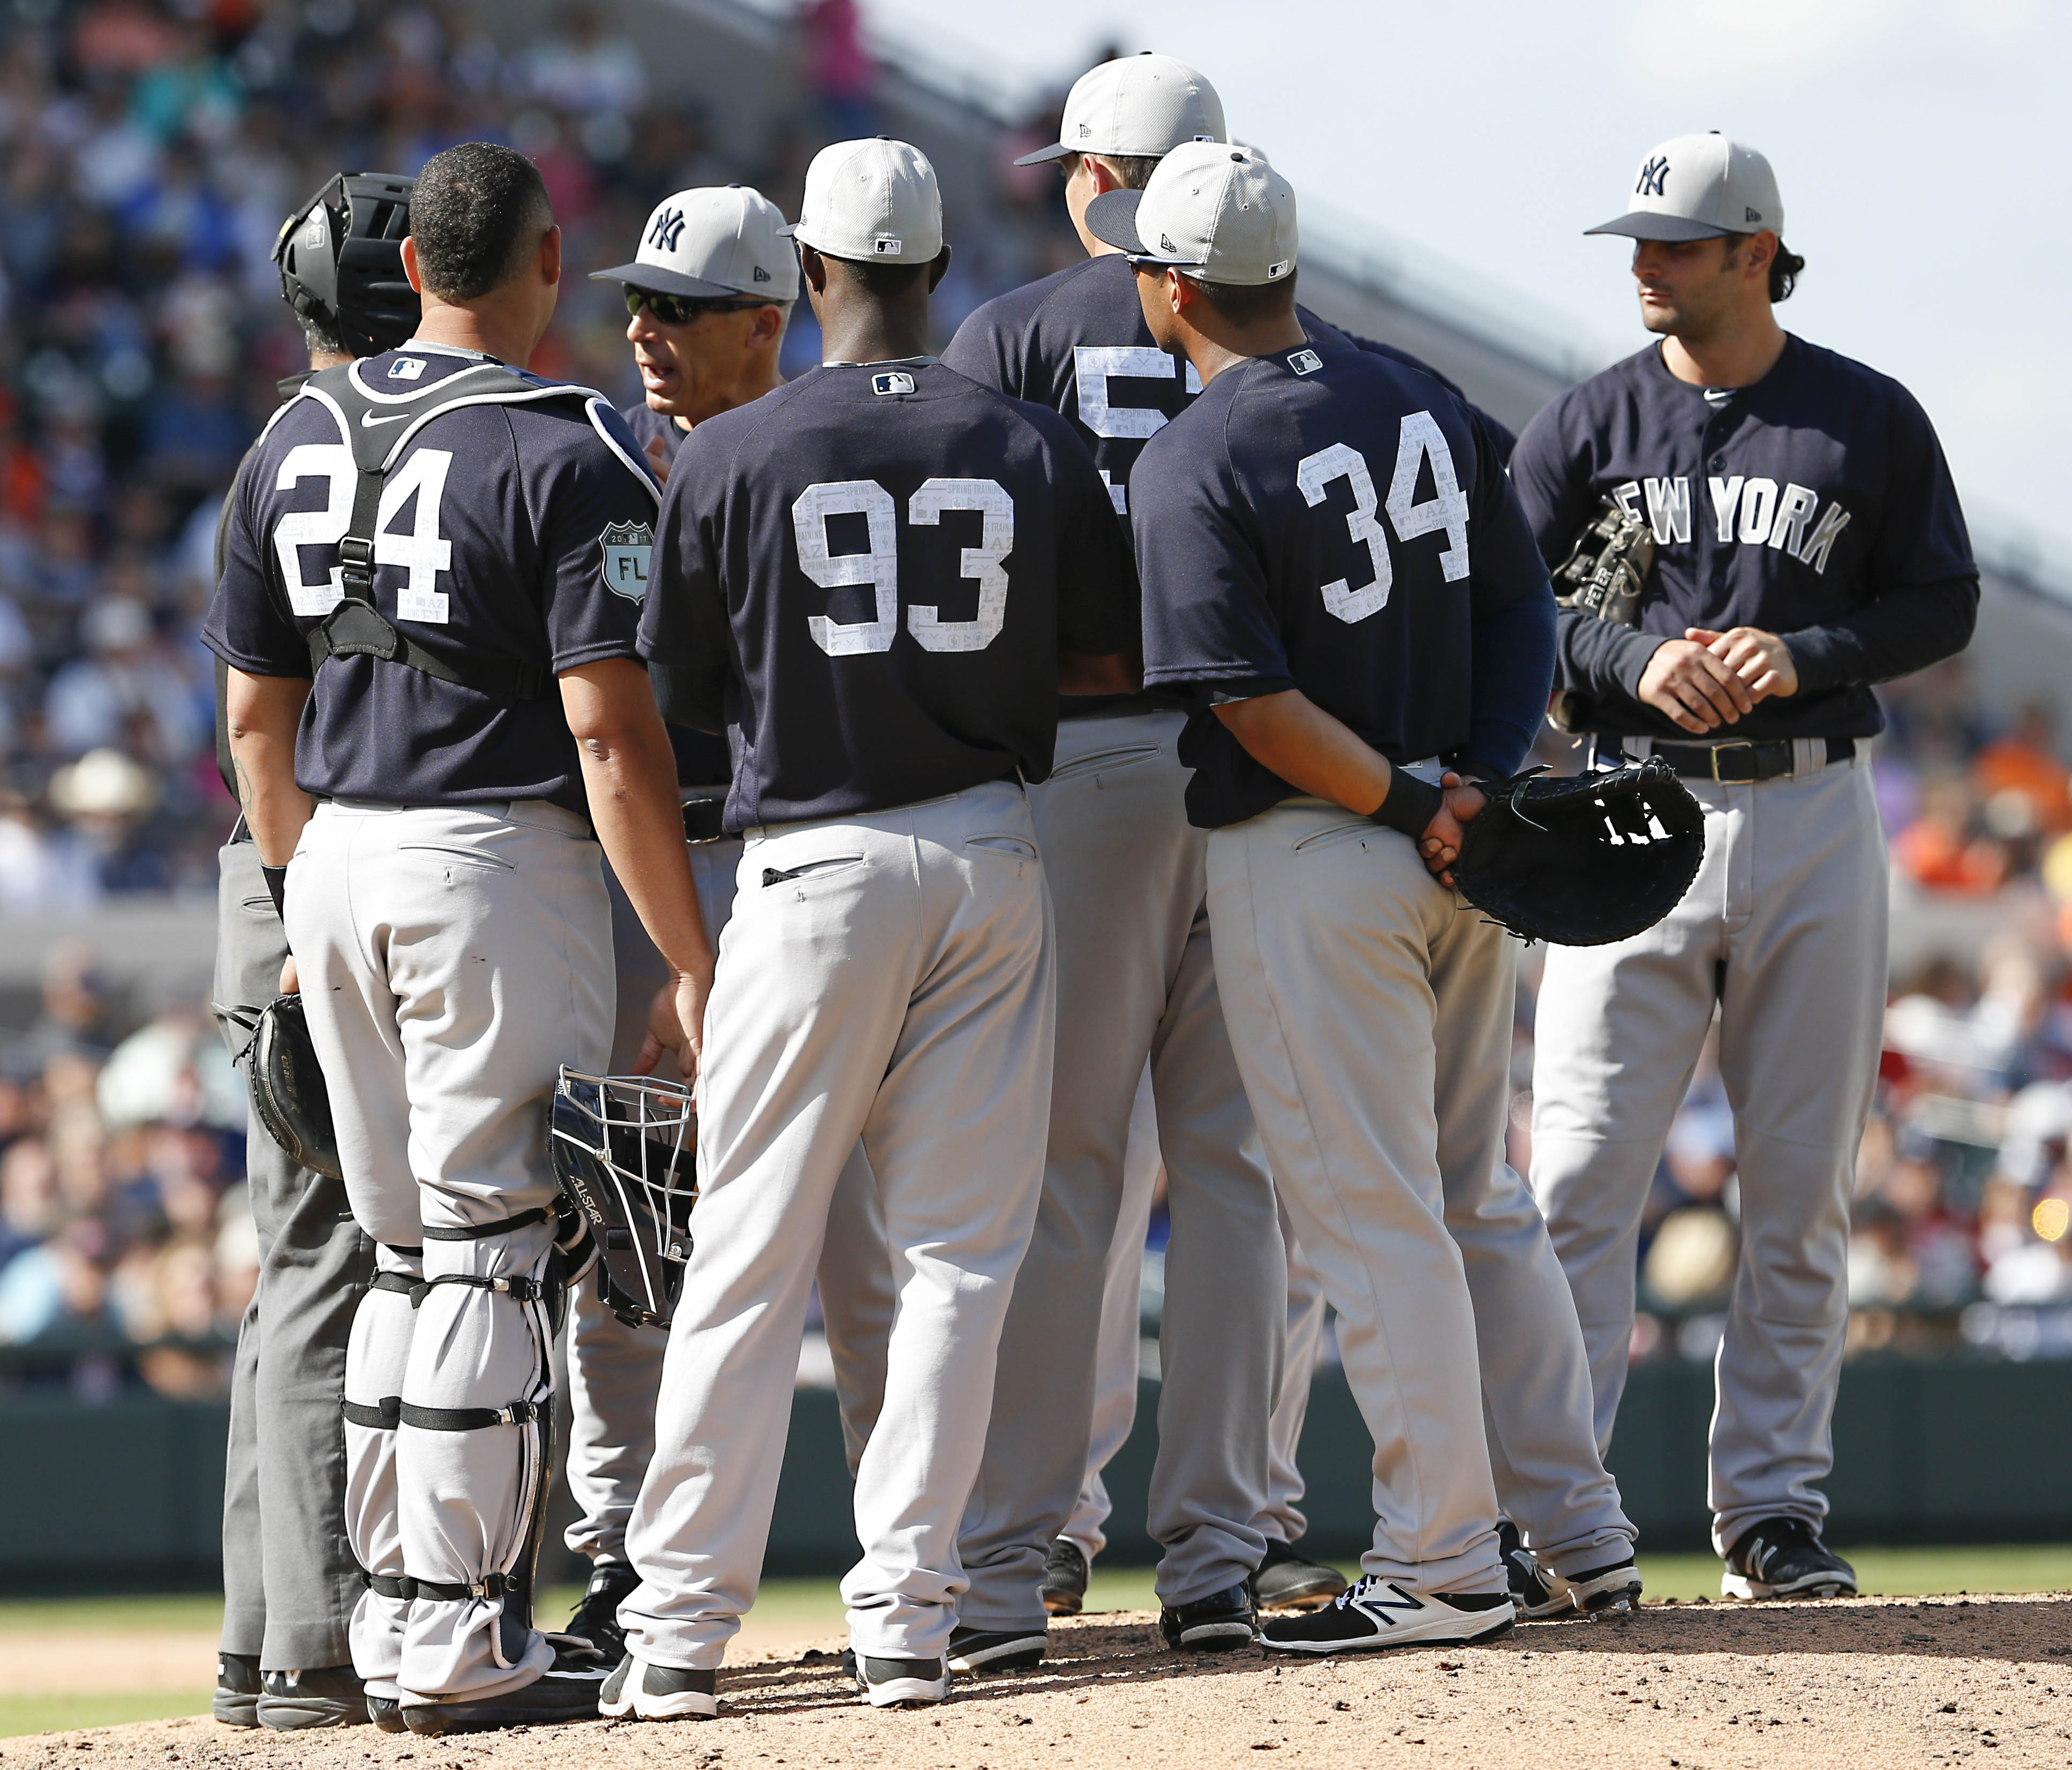 New York Yankees  Top 5 Players Thus Far In Spring Training d37d0e67160